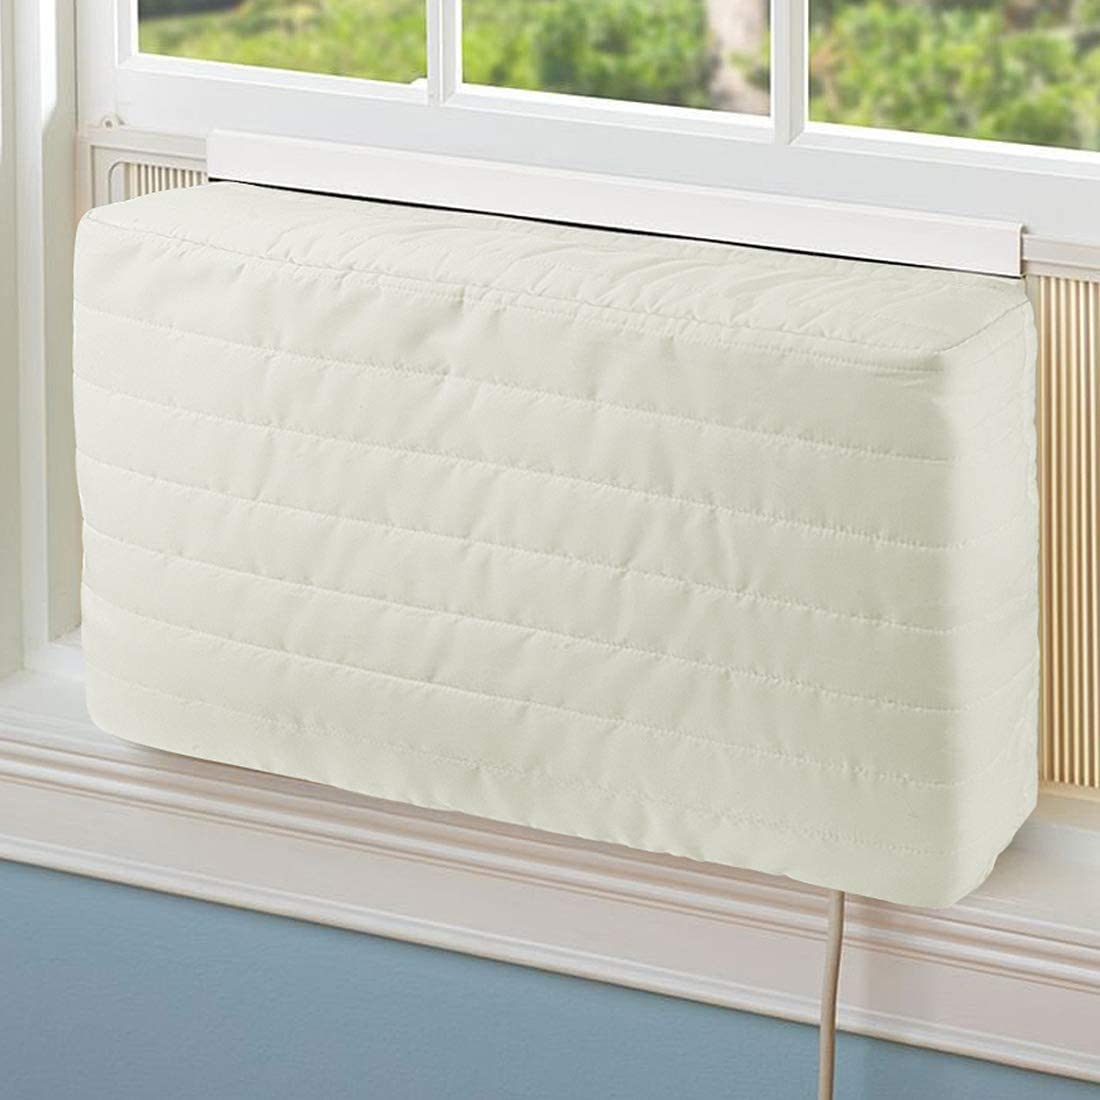 COSFLY Indoor Air Conditioner Cover AC Unit Covers for Inside 28 x 20 x 3 inches(L x Hx D)